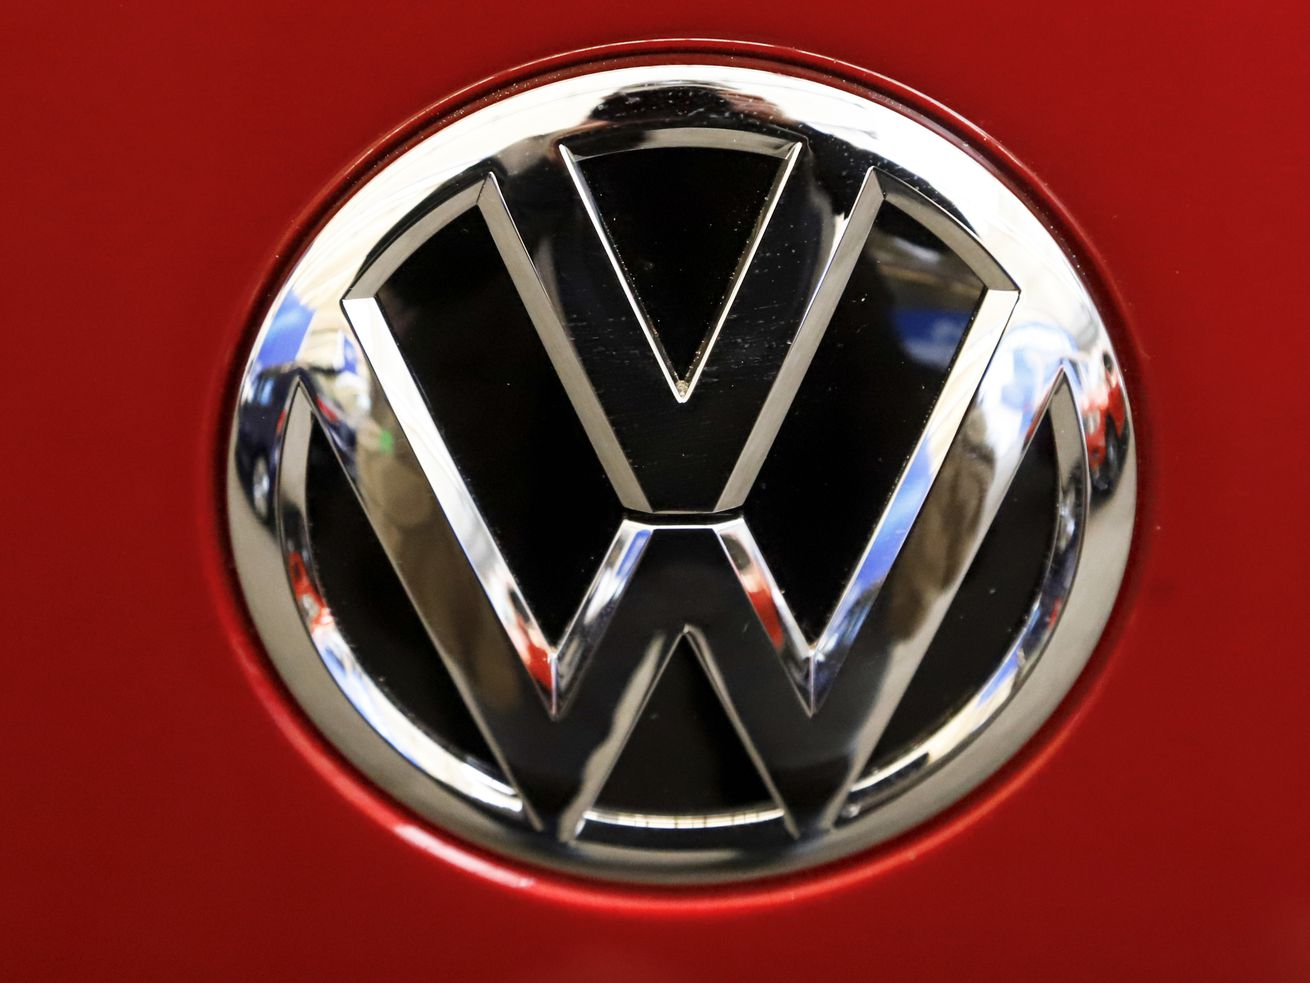 Illinois received more money from the Volkswagen emissions scandal legal settlement than any other Midwest state.